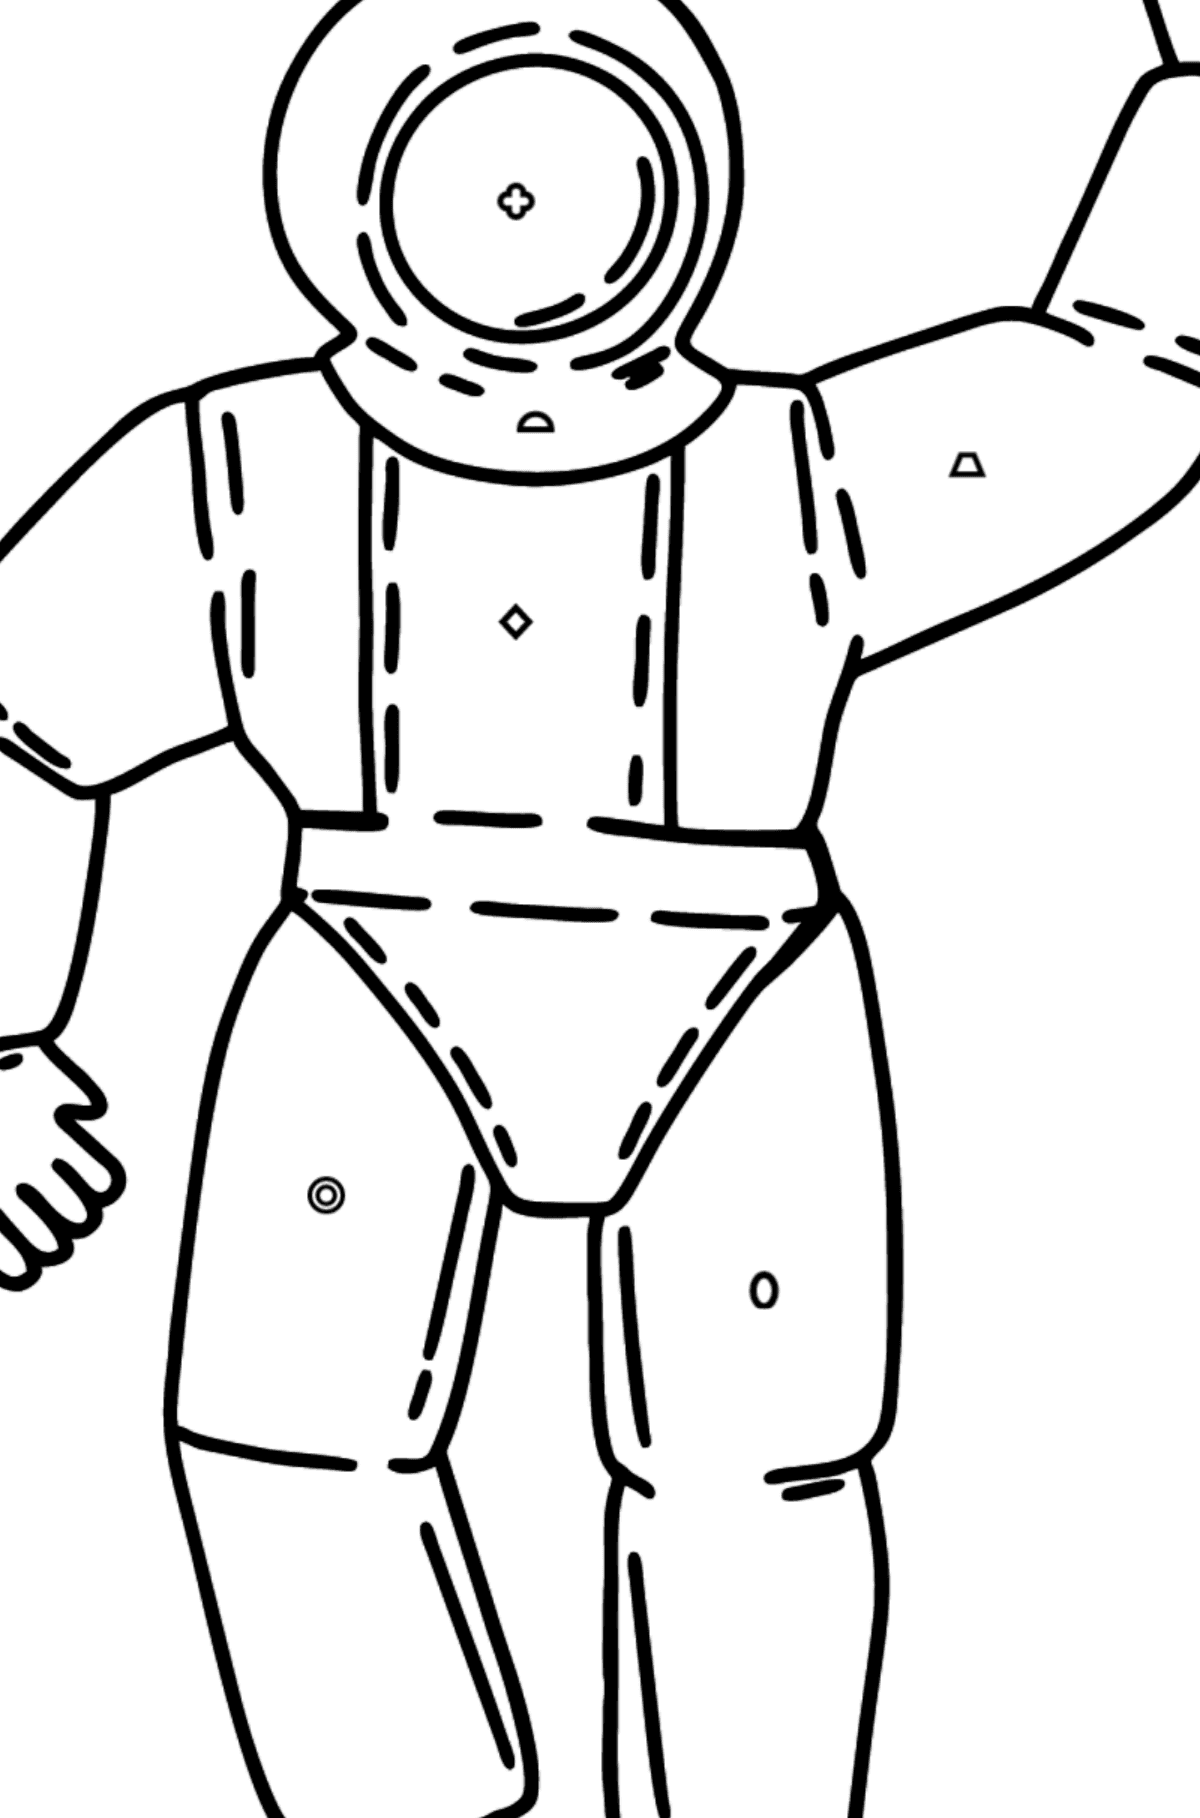 Astronaut coloring page - Coloring by Geometric Shapes for Kids